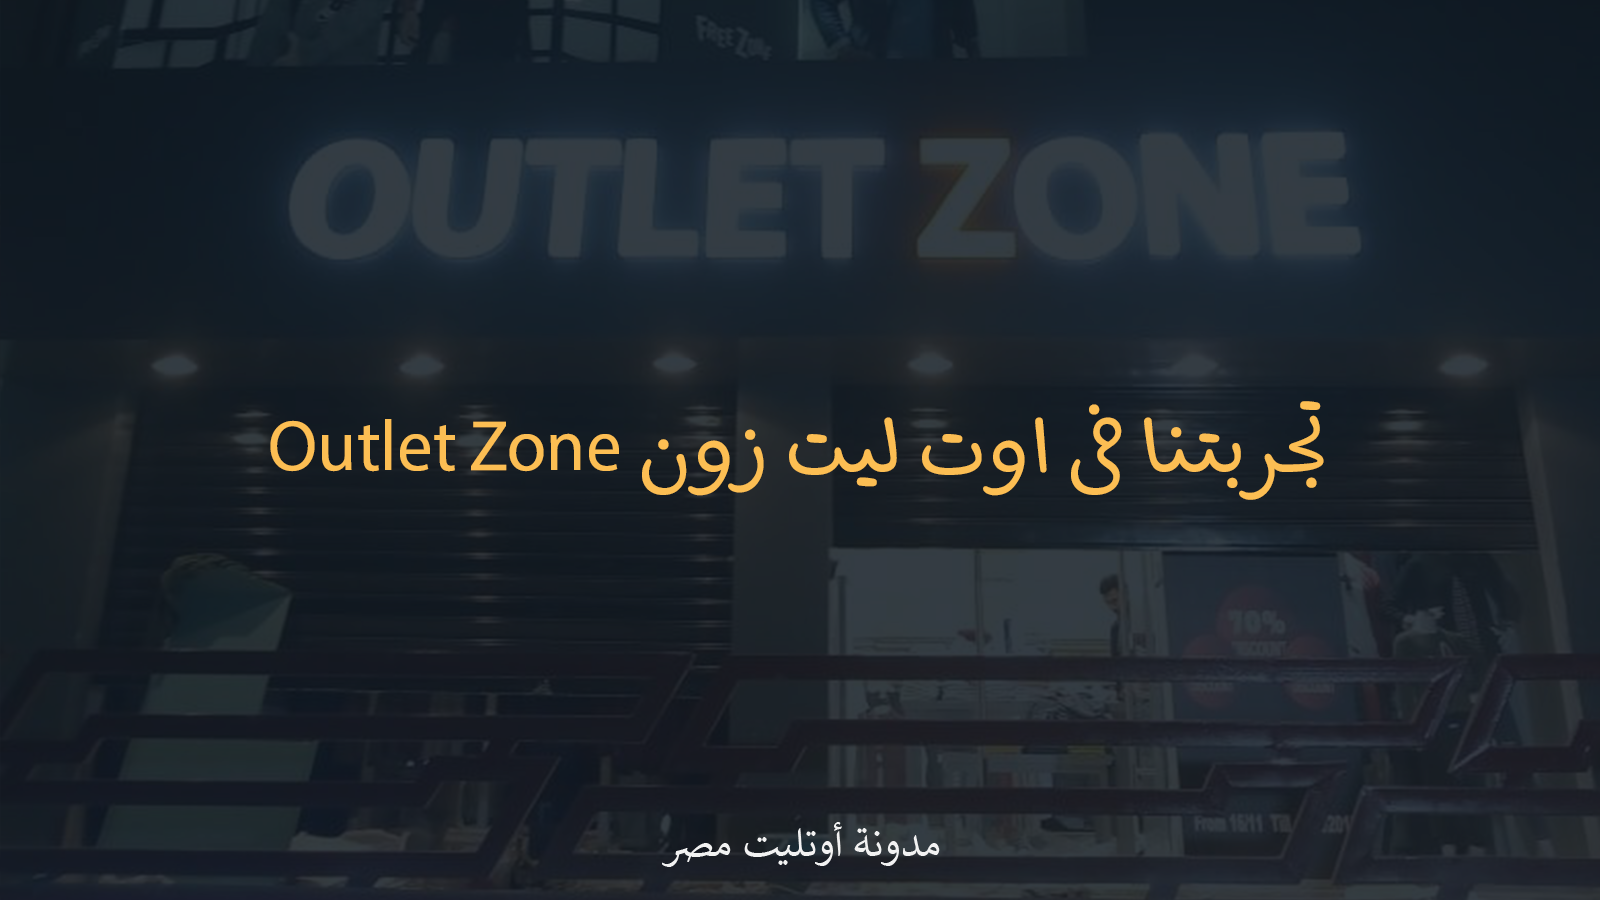 c1031a794 تجربتنا فى اوت ليت زون Outlet Zone